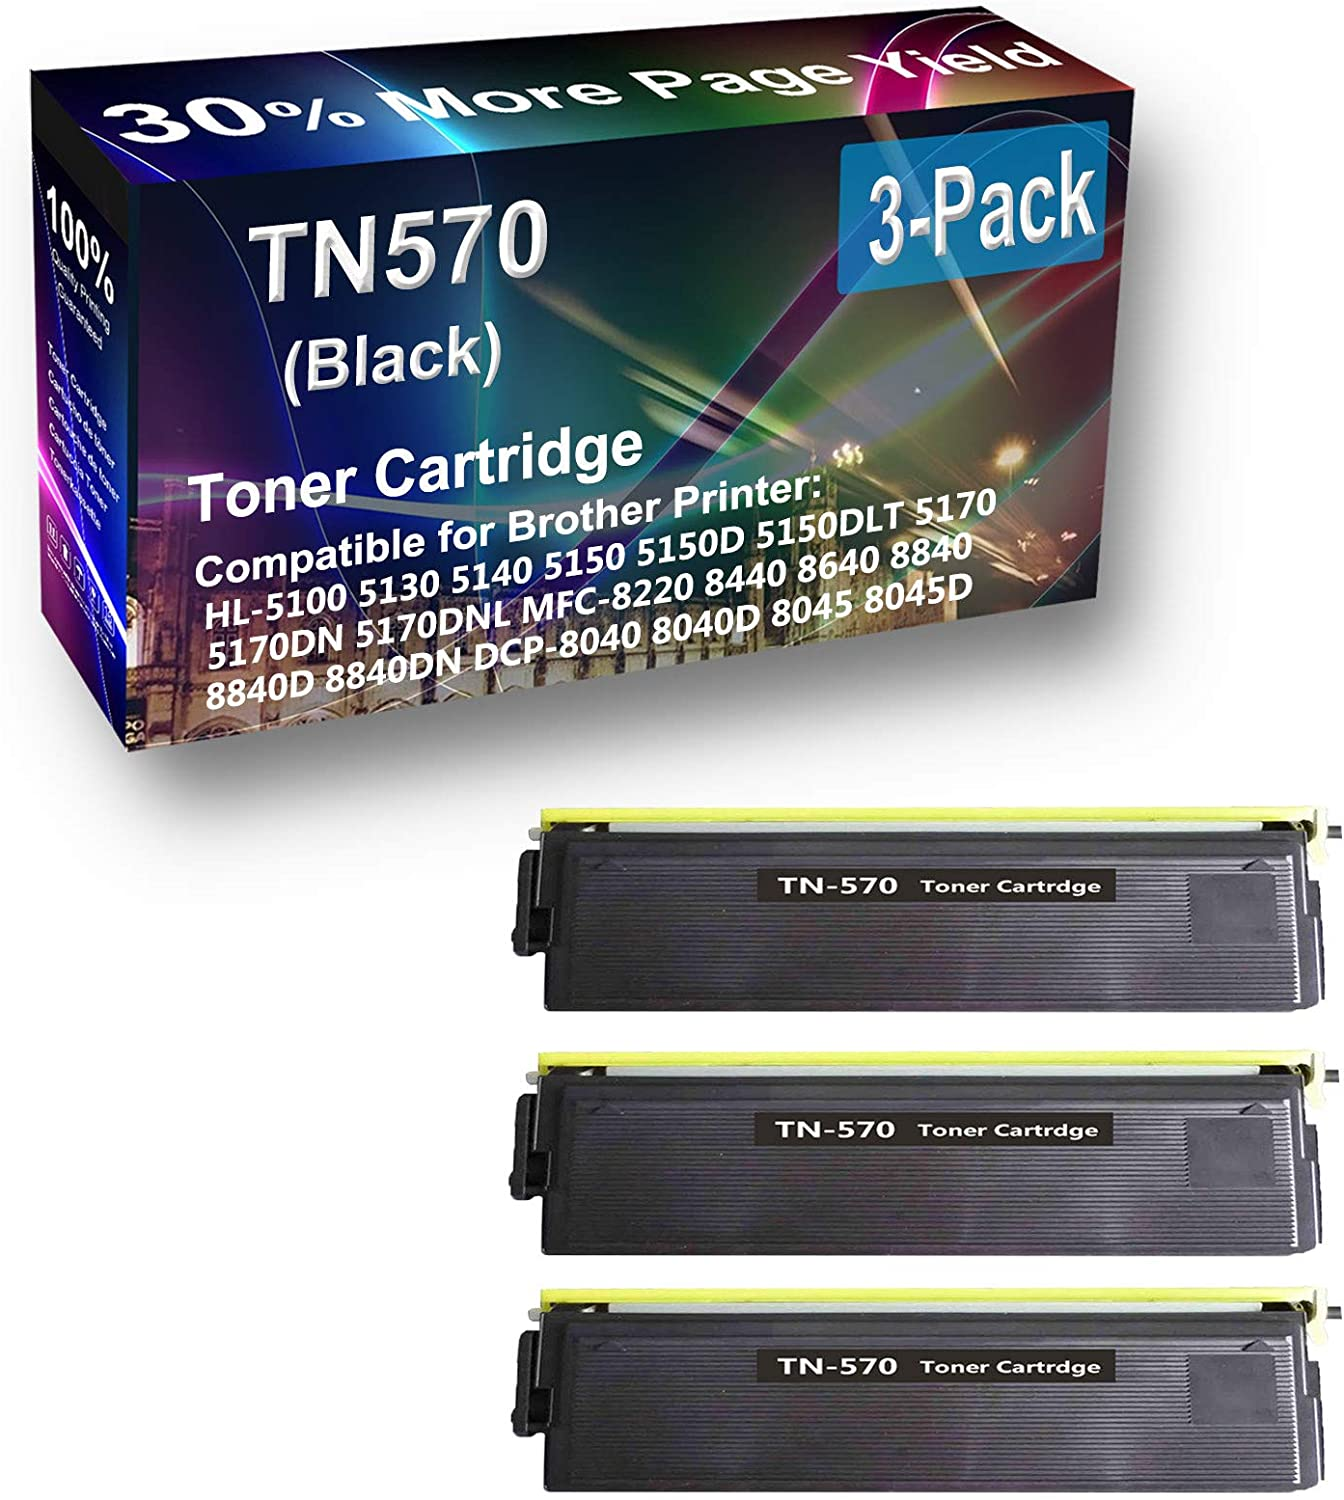 3-Pack Compatible High Capacity TN570 Toner Cartridge use for Brother DCP-8040 DCP-8040D DCP-8045 DCP-8045D HL-5100 HL-5130 (Black)